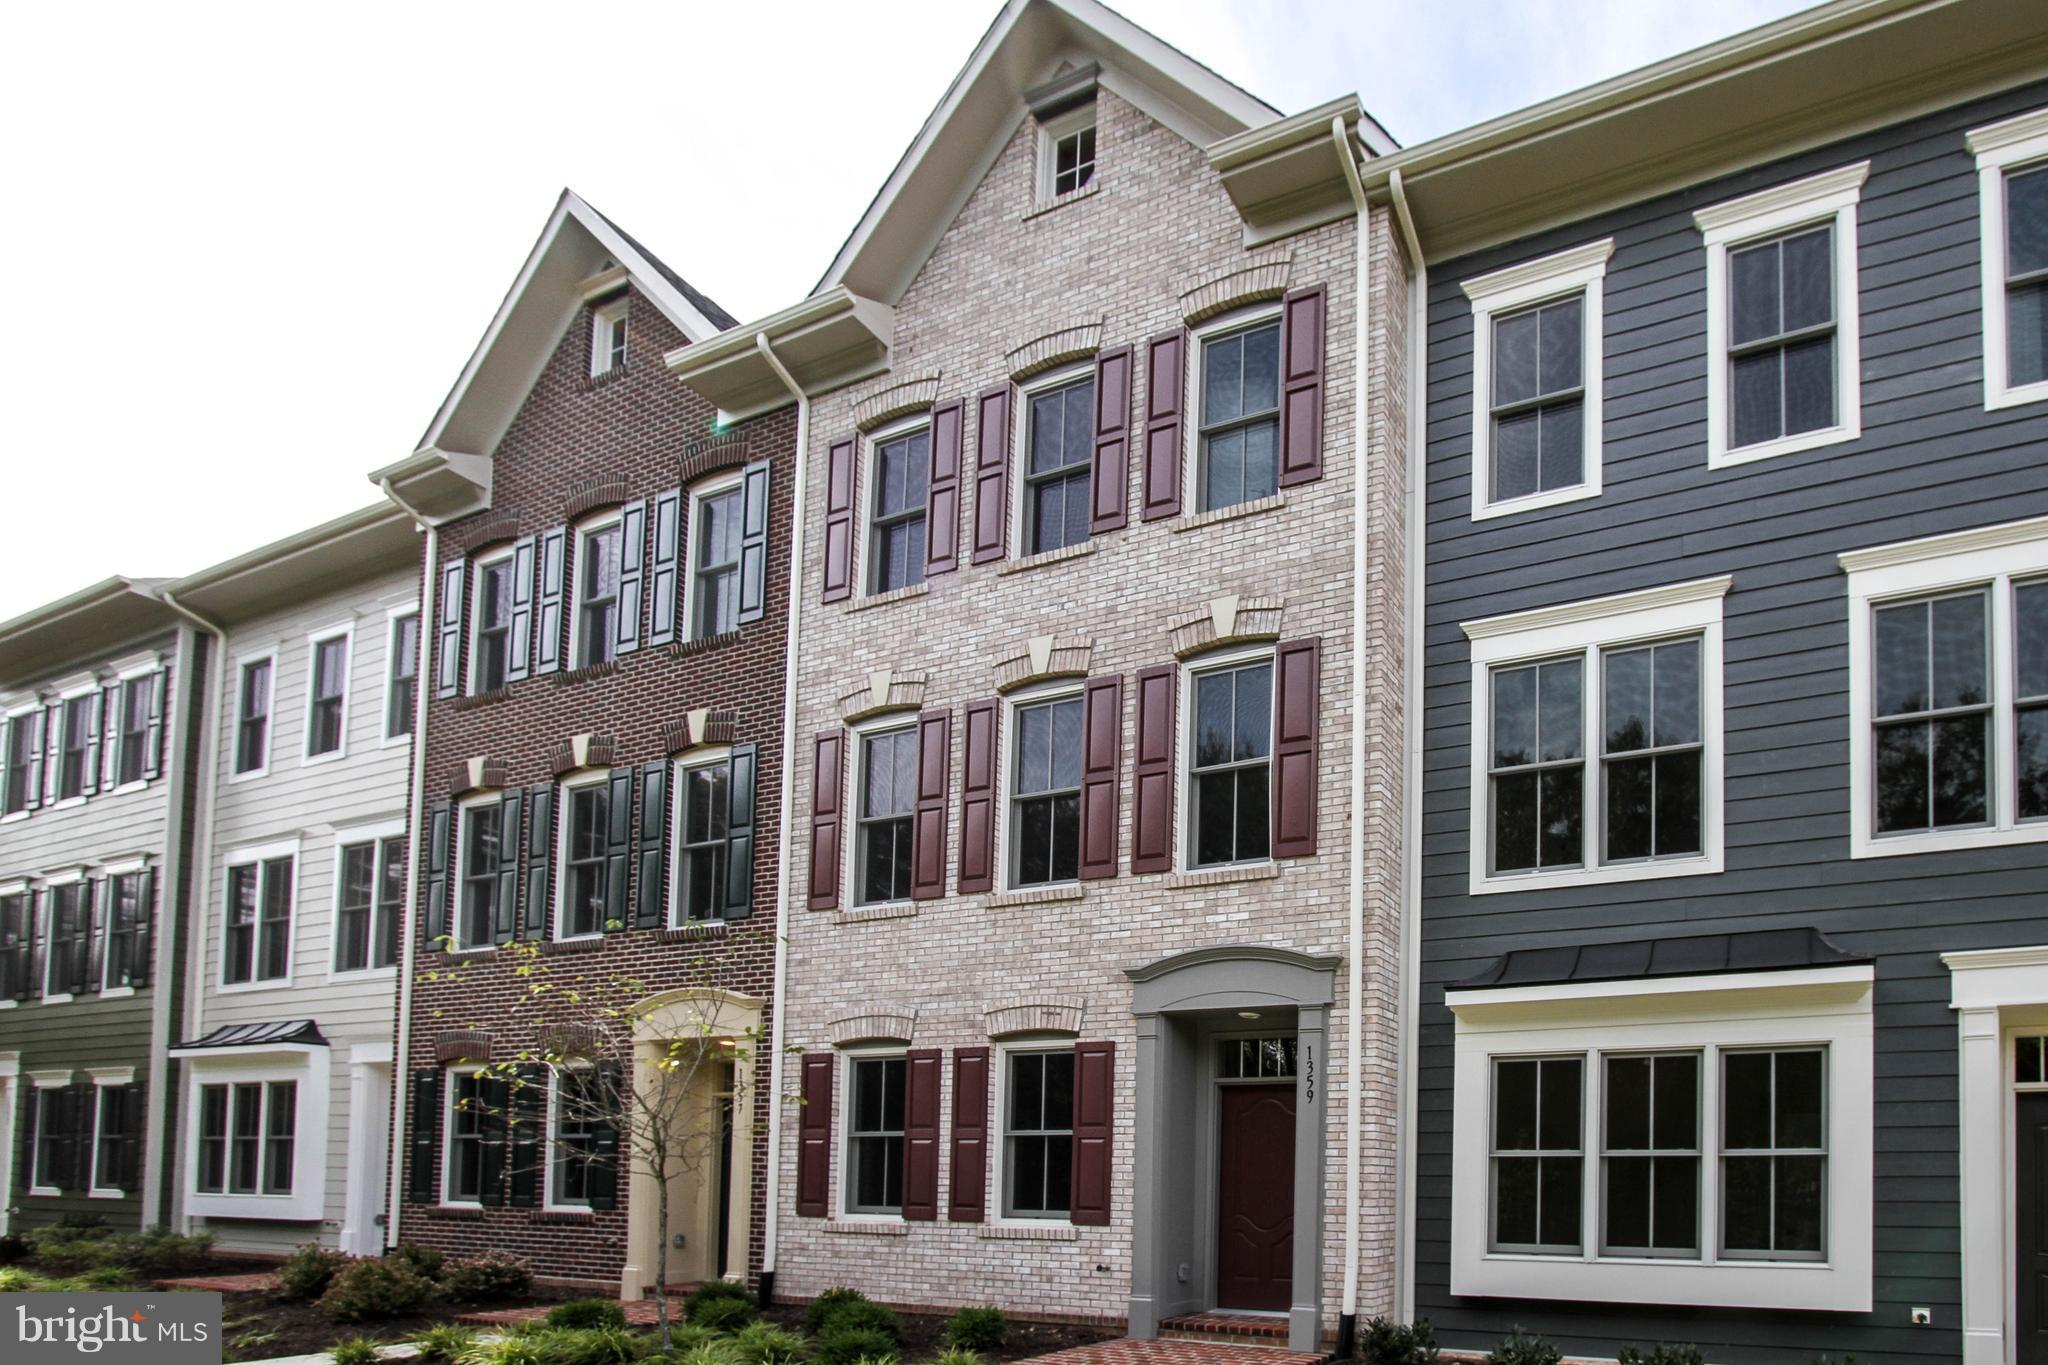 NEW - Price Reduced $25K!! Quick Del - 4 Story Luxury Condominium Townhome in Old Town. 3 Bedrooms, 3 Full Baths + 2 Powder Rooms. Gourmet Kitchen w/Gas Cooktop + Double Oven, Esspresso Cabinets, Waterfall Quartz Center Island. Tile Foyer, Hardwoods on Main, BR + Loft Levels. 9 ft ceilings, Large 200+ sq ft Terrace w/Gas/Water bibs! 2 CAR GARAGE!! Hard to Find -  Pet Friendly FENCED Front Yards!!